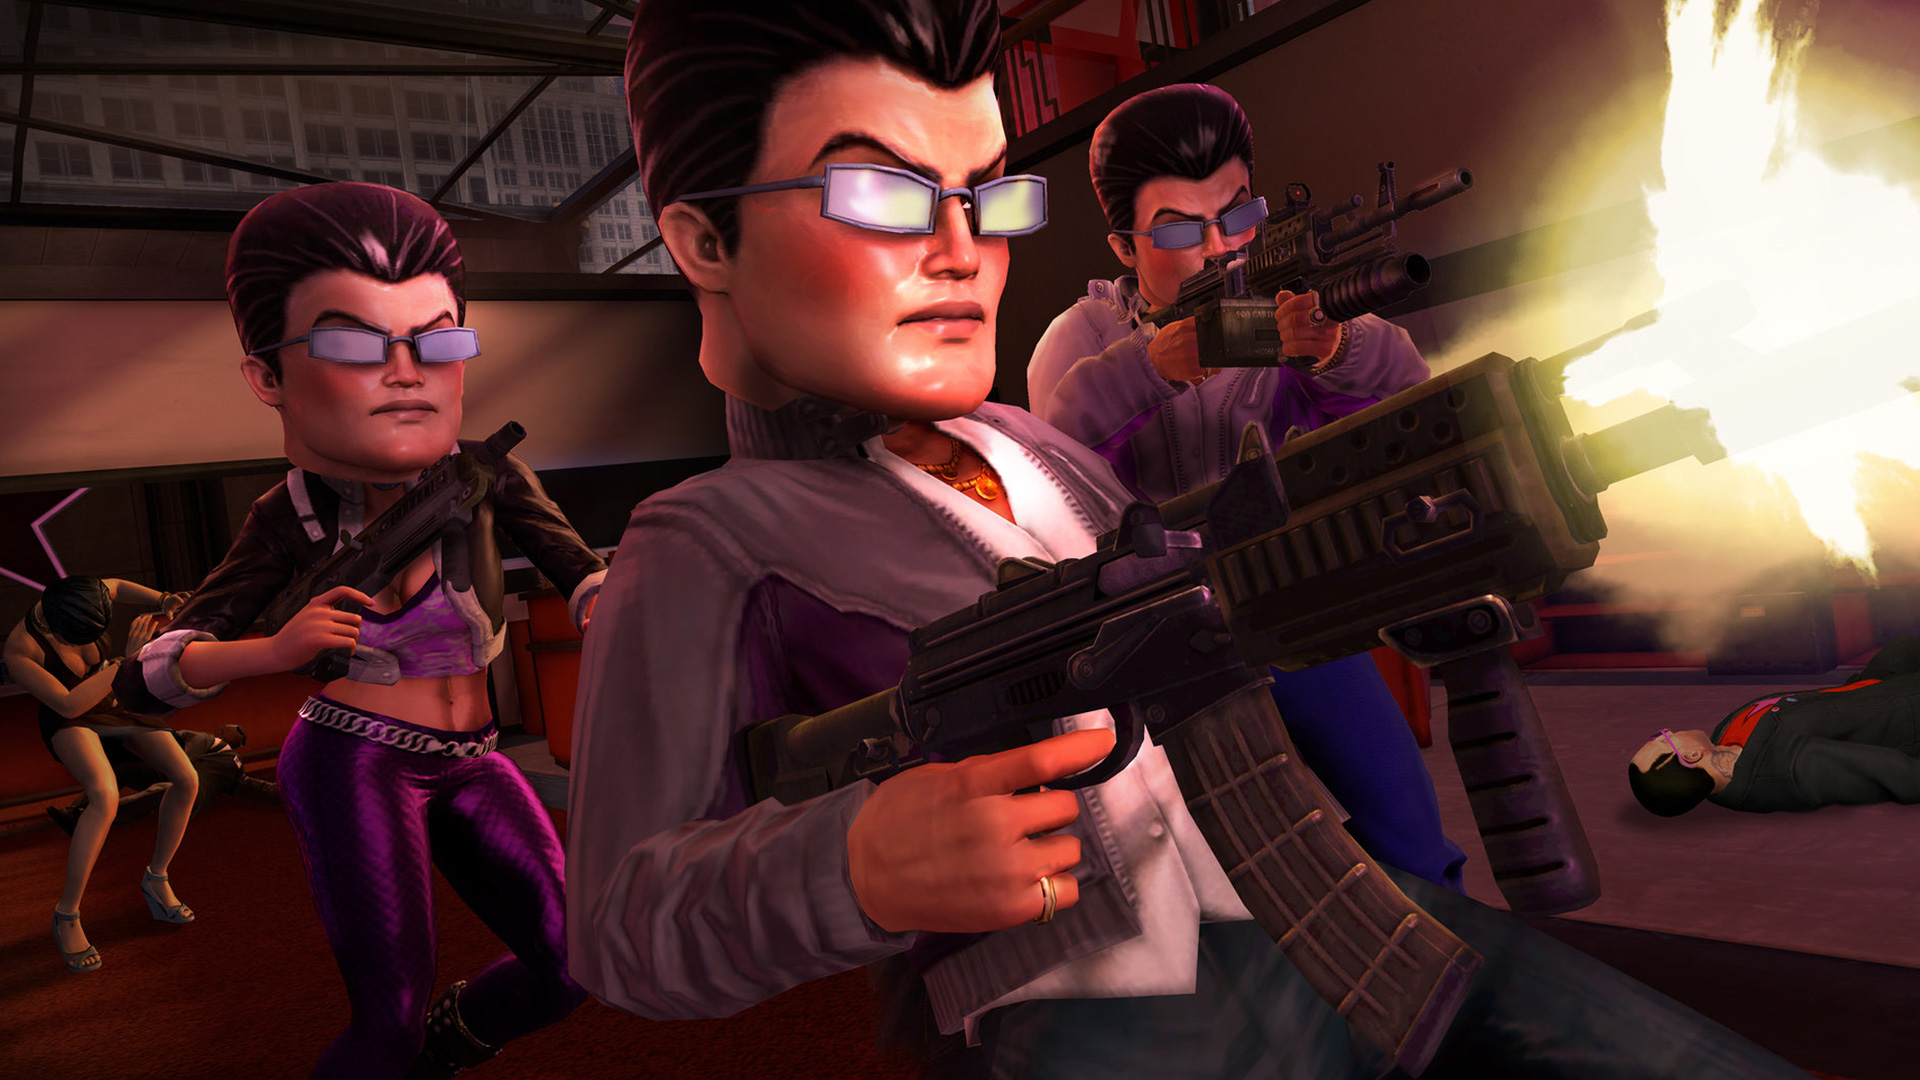 Free Saints Row: The Third Wallpaper in 1920x1080